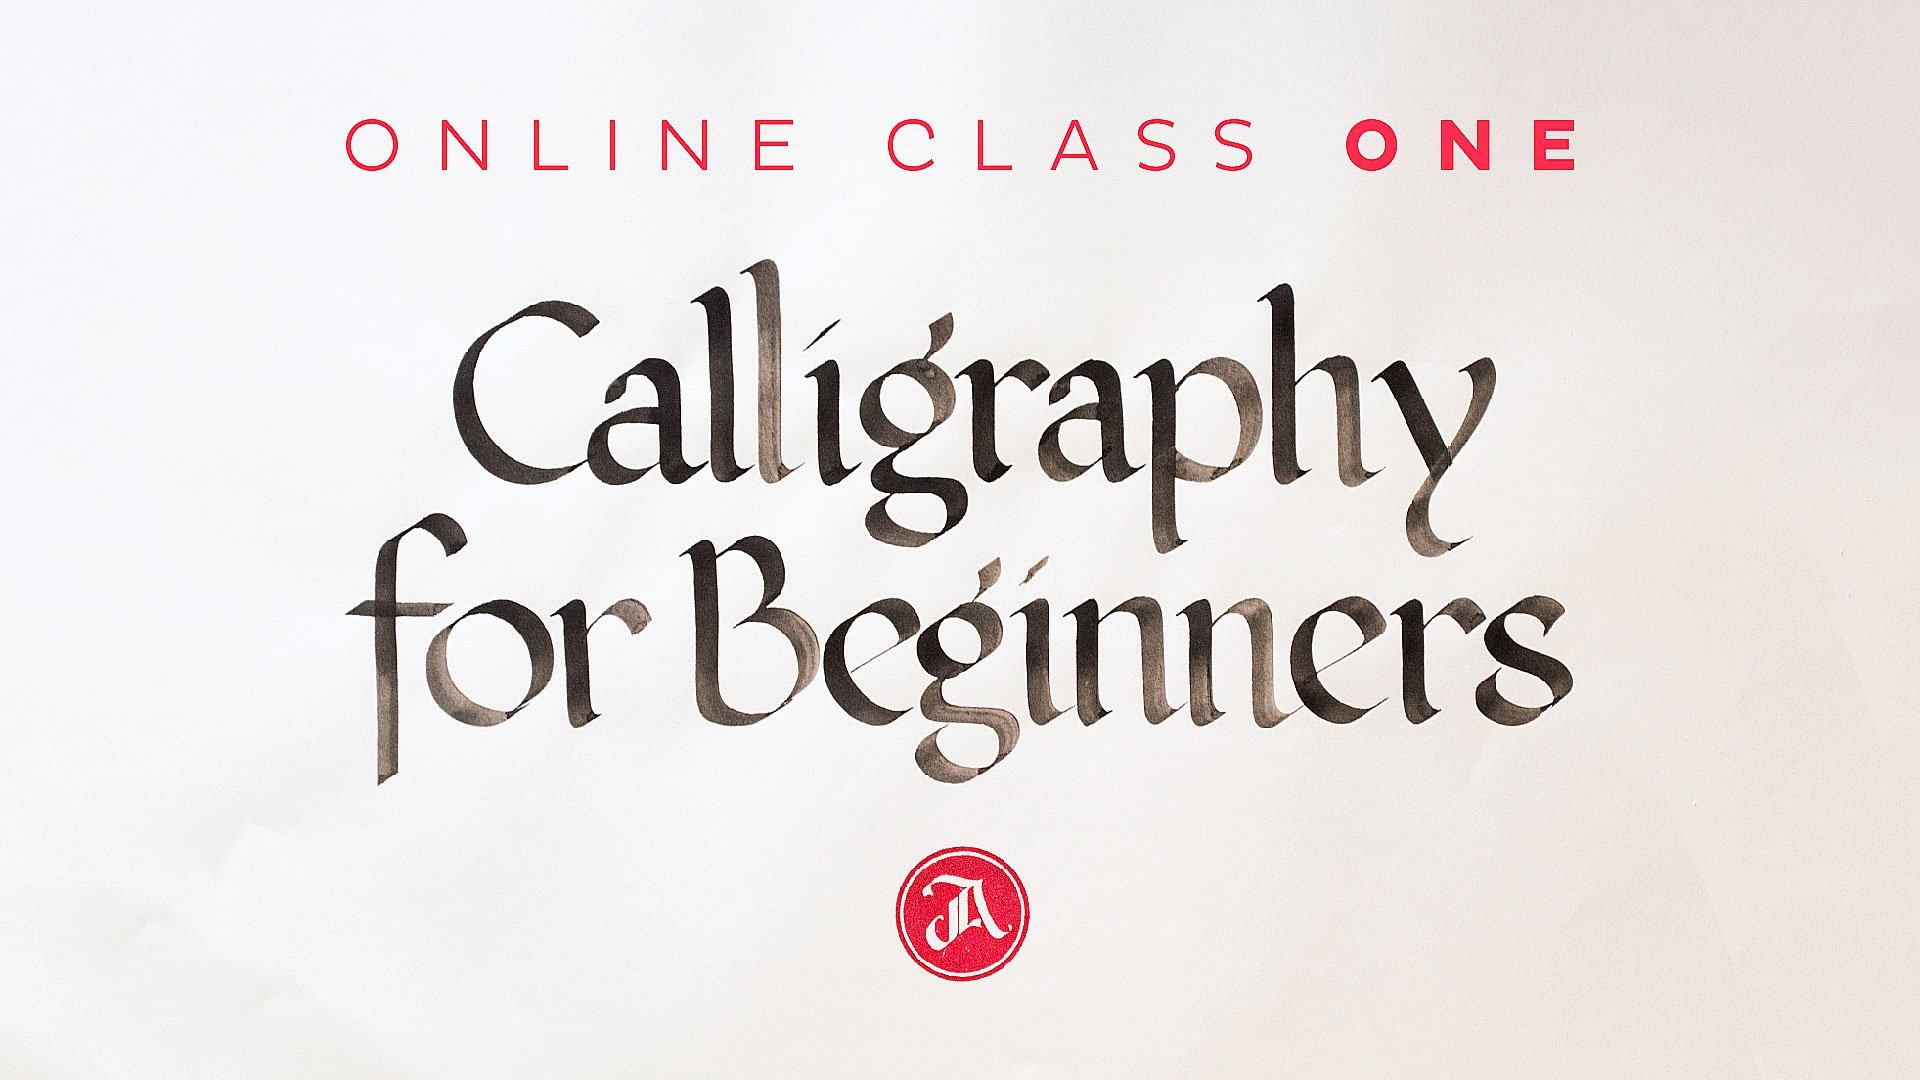 Calligraphy For Beginners Online Calligraphy For Beginners 1 The Foundational Styles Of